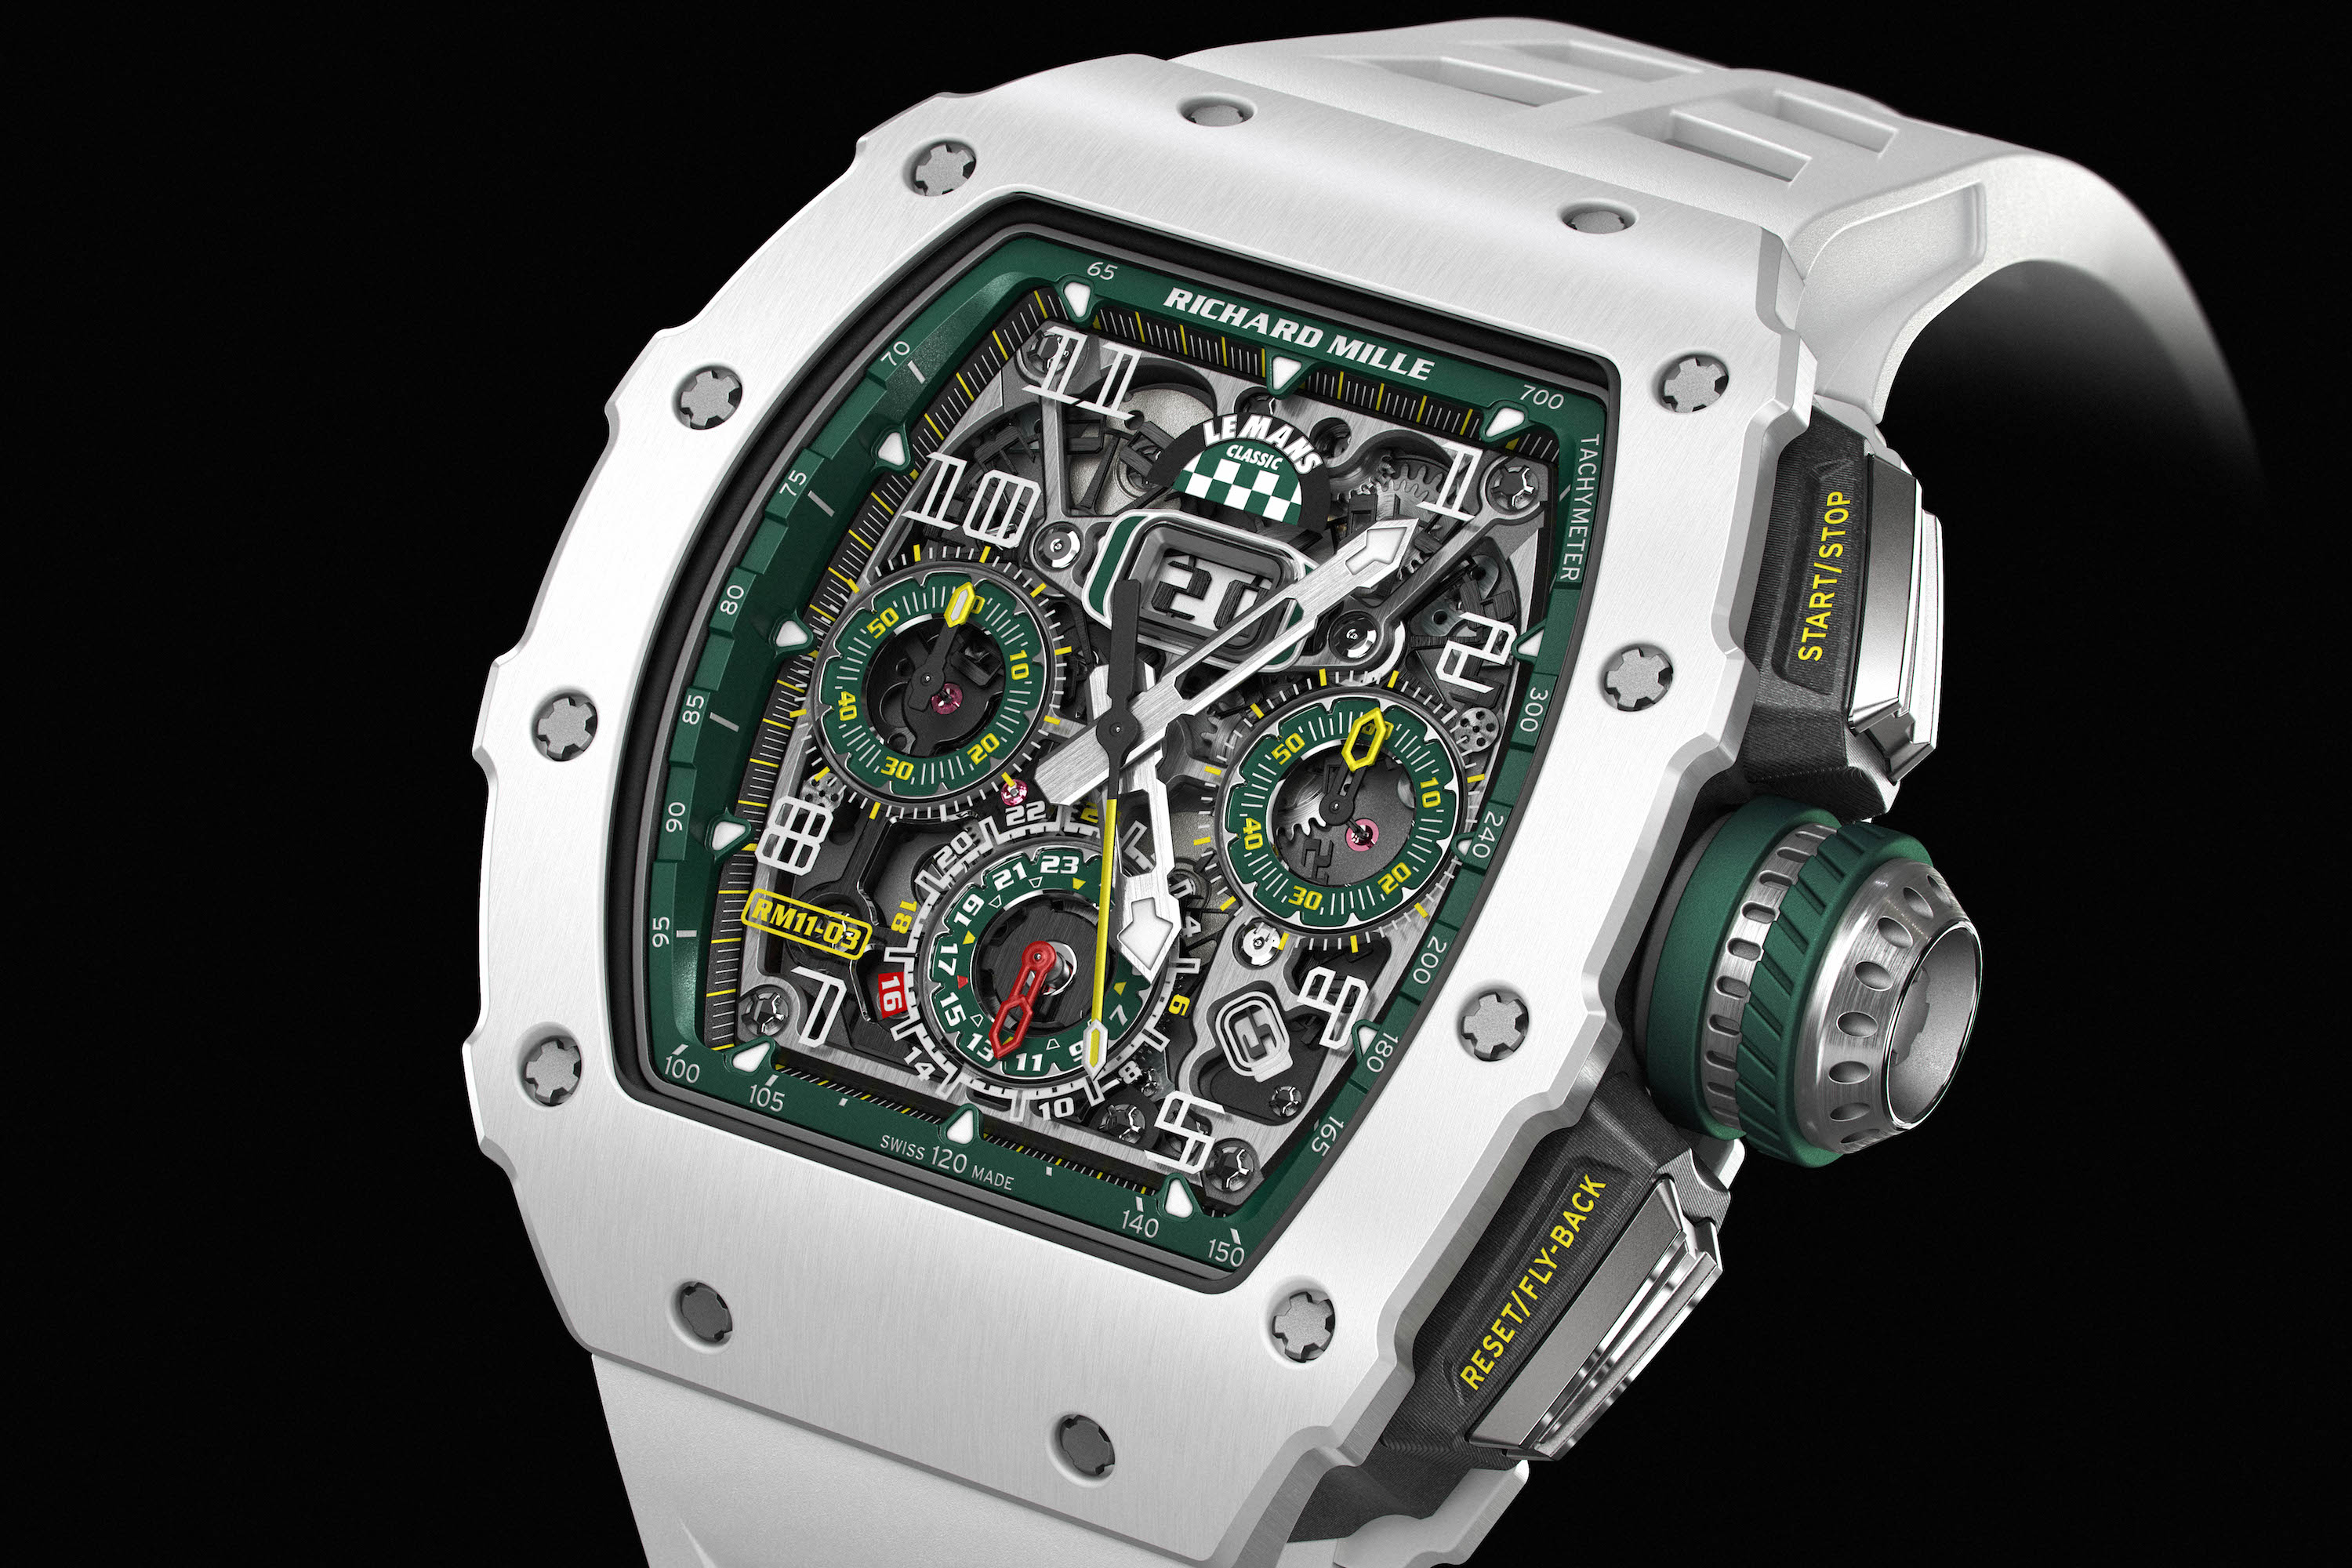 Richard Mille celebrates the spirit of Le Mans with the RM 11-03 LMC